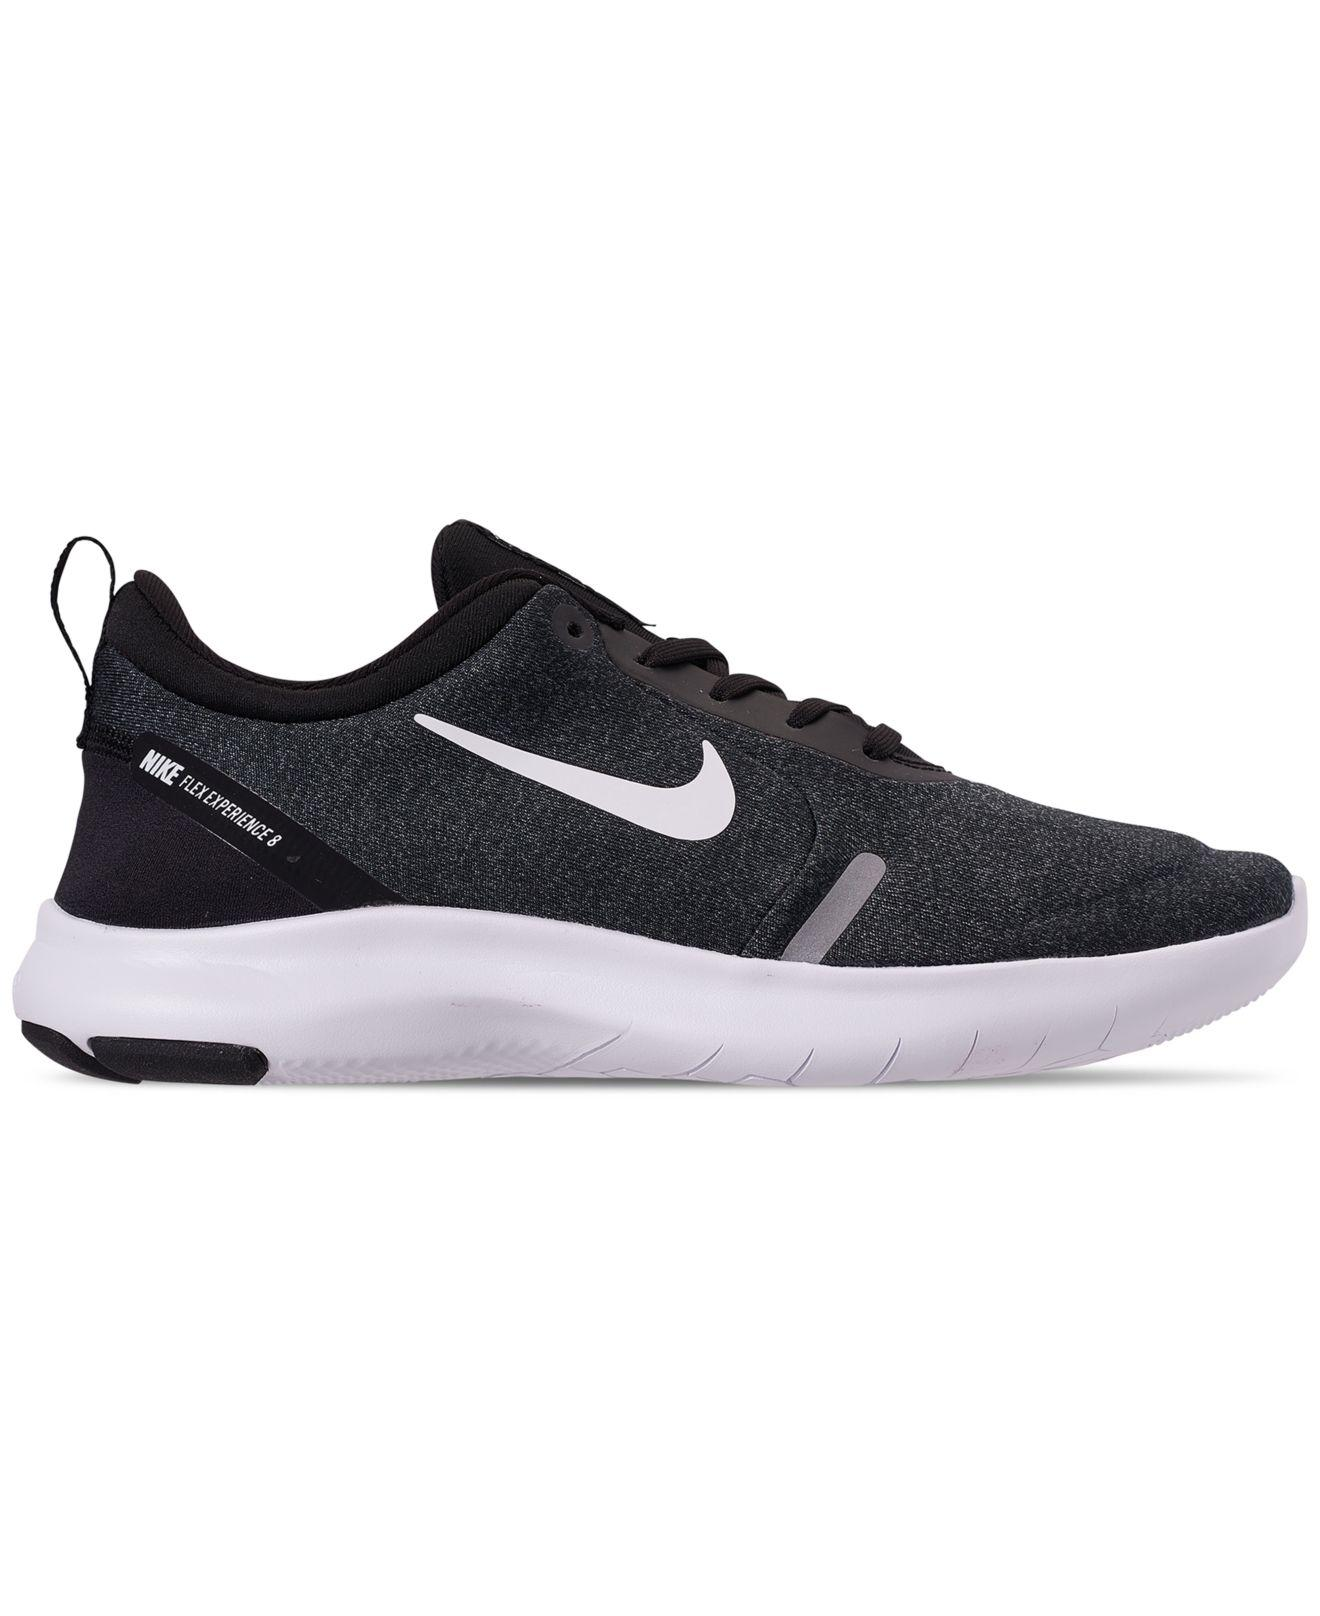 09e8d332e146 Lyst - Nike Flex Experience Run 8 Wide Running Sneakers From Finish Line in  Black